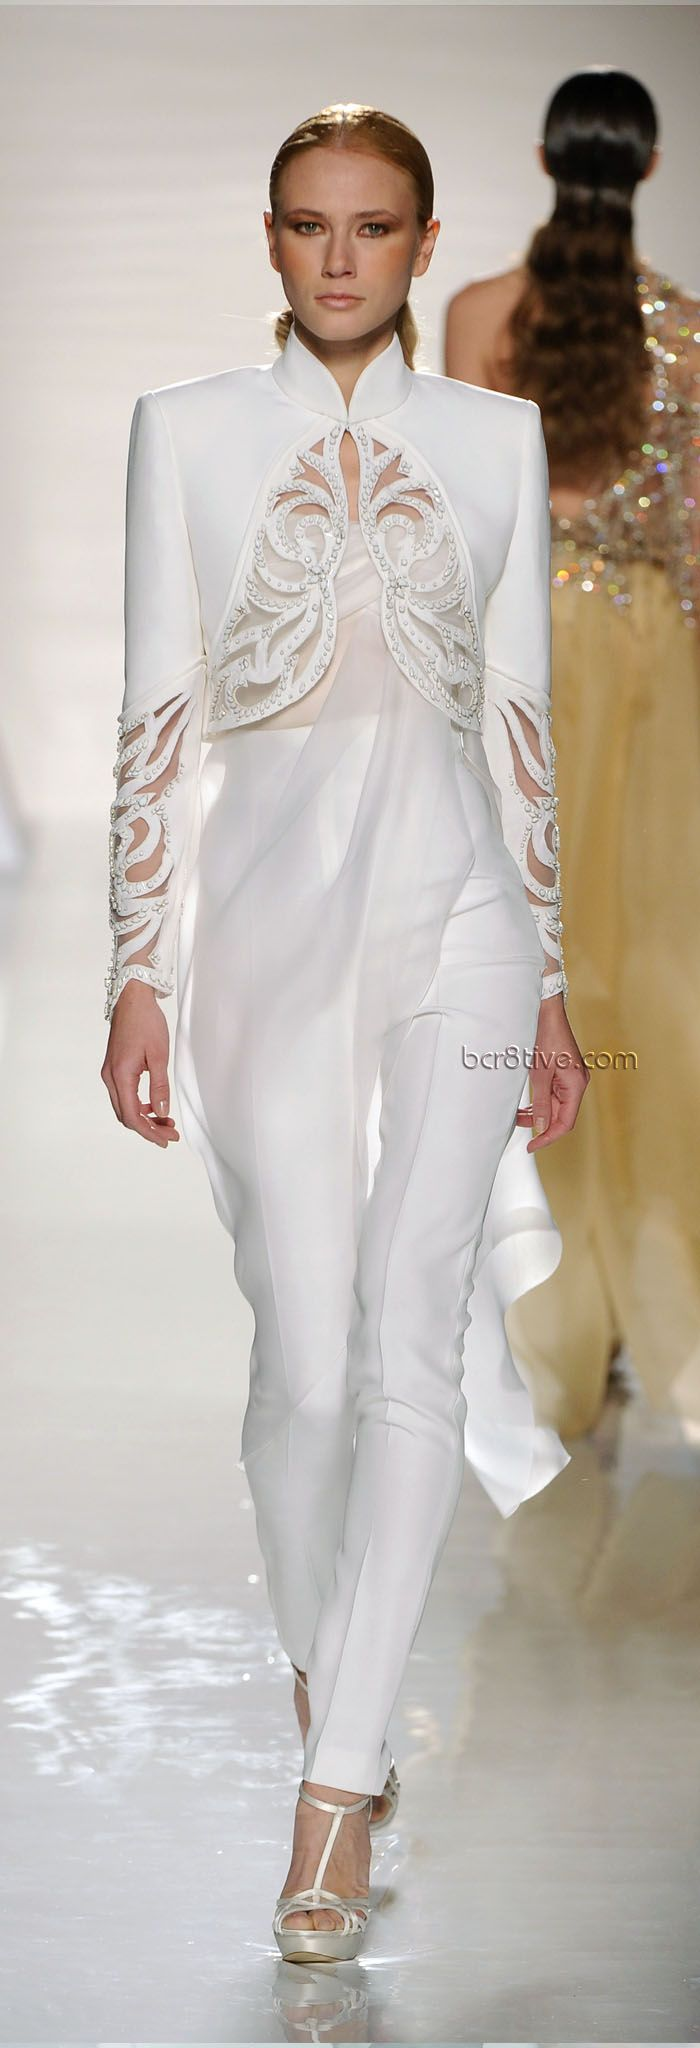 Fausto Sarli Spring Summer 2012 Couture OMG! this would be perfect for a mature bride!